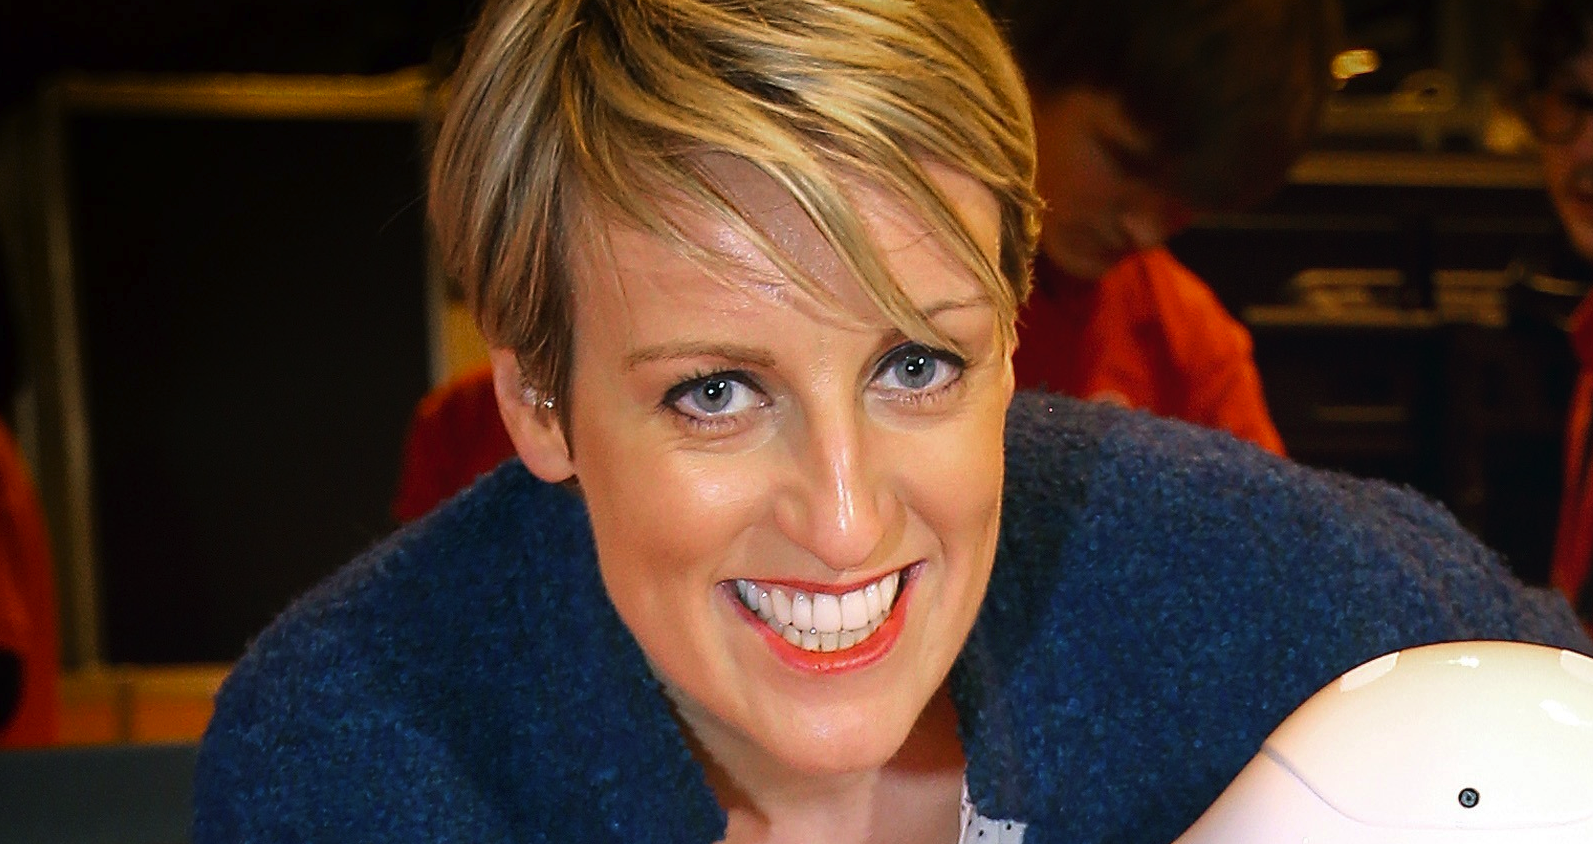 Pregnant BBC Breakfast host Steph McGovern asks followers for help as she reveals unusual lump